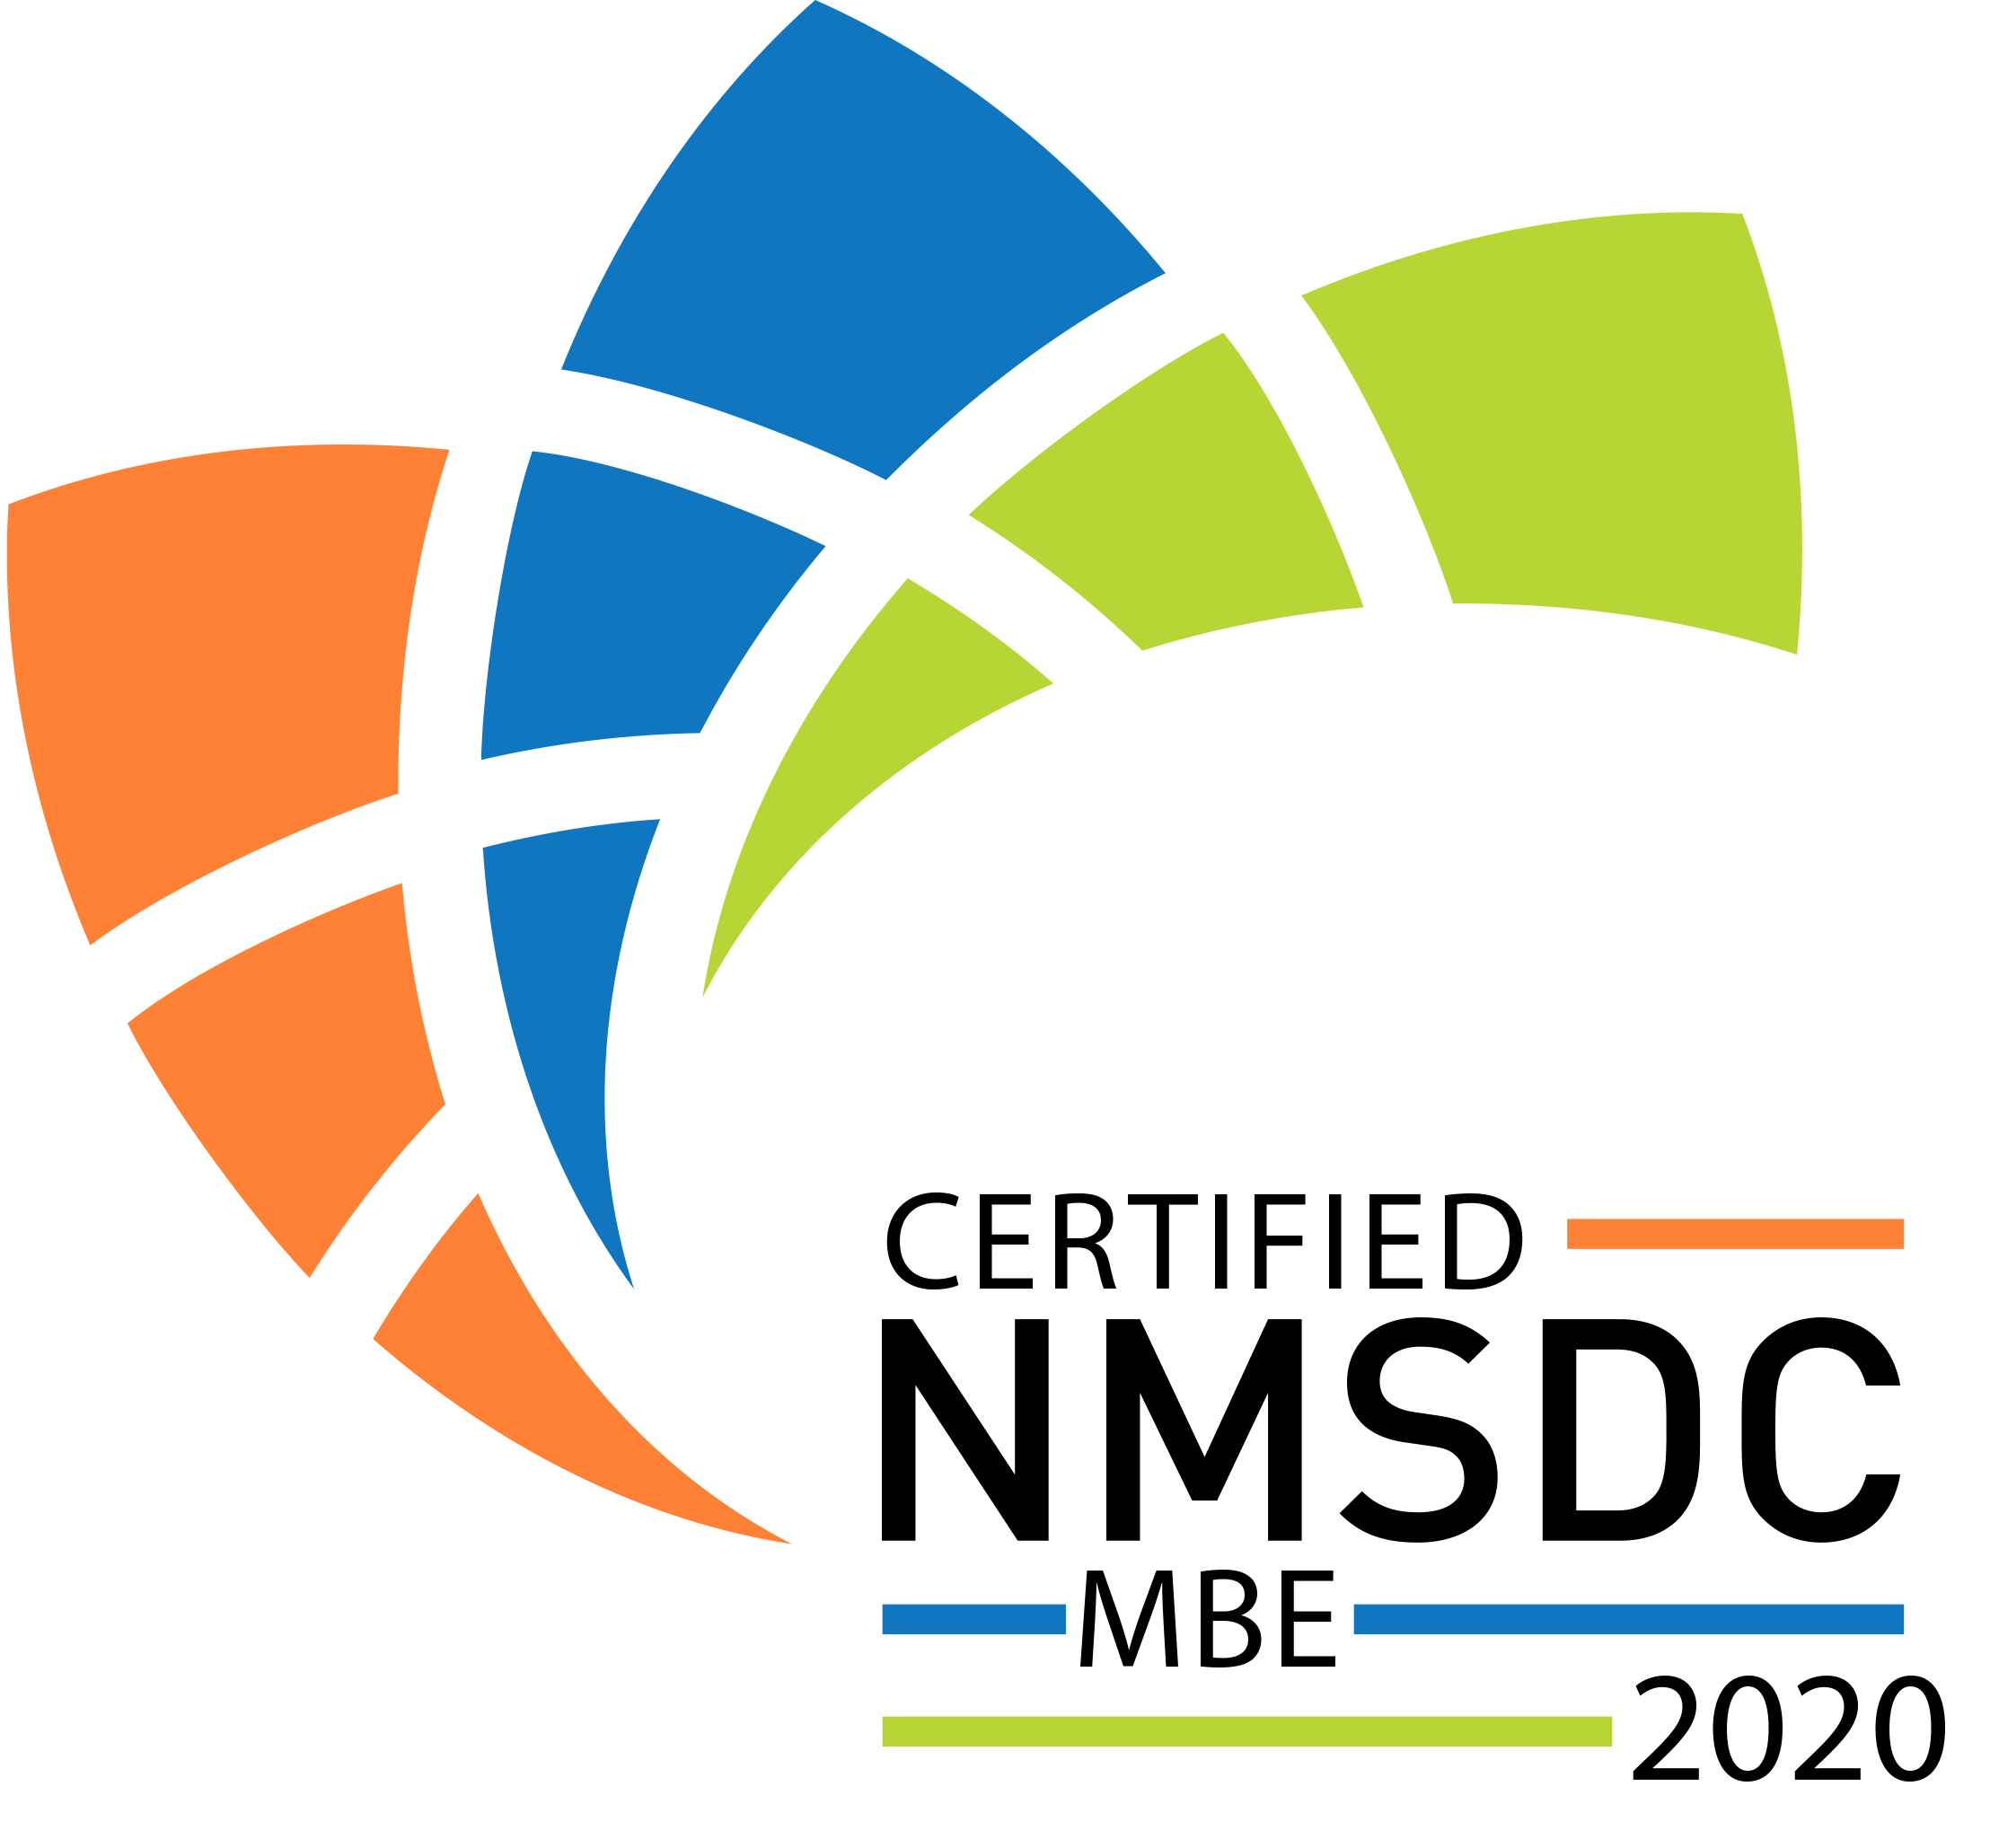 Certified NMSDC MBE